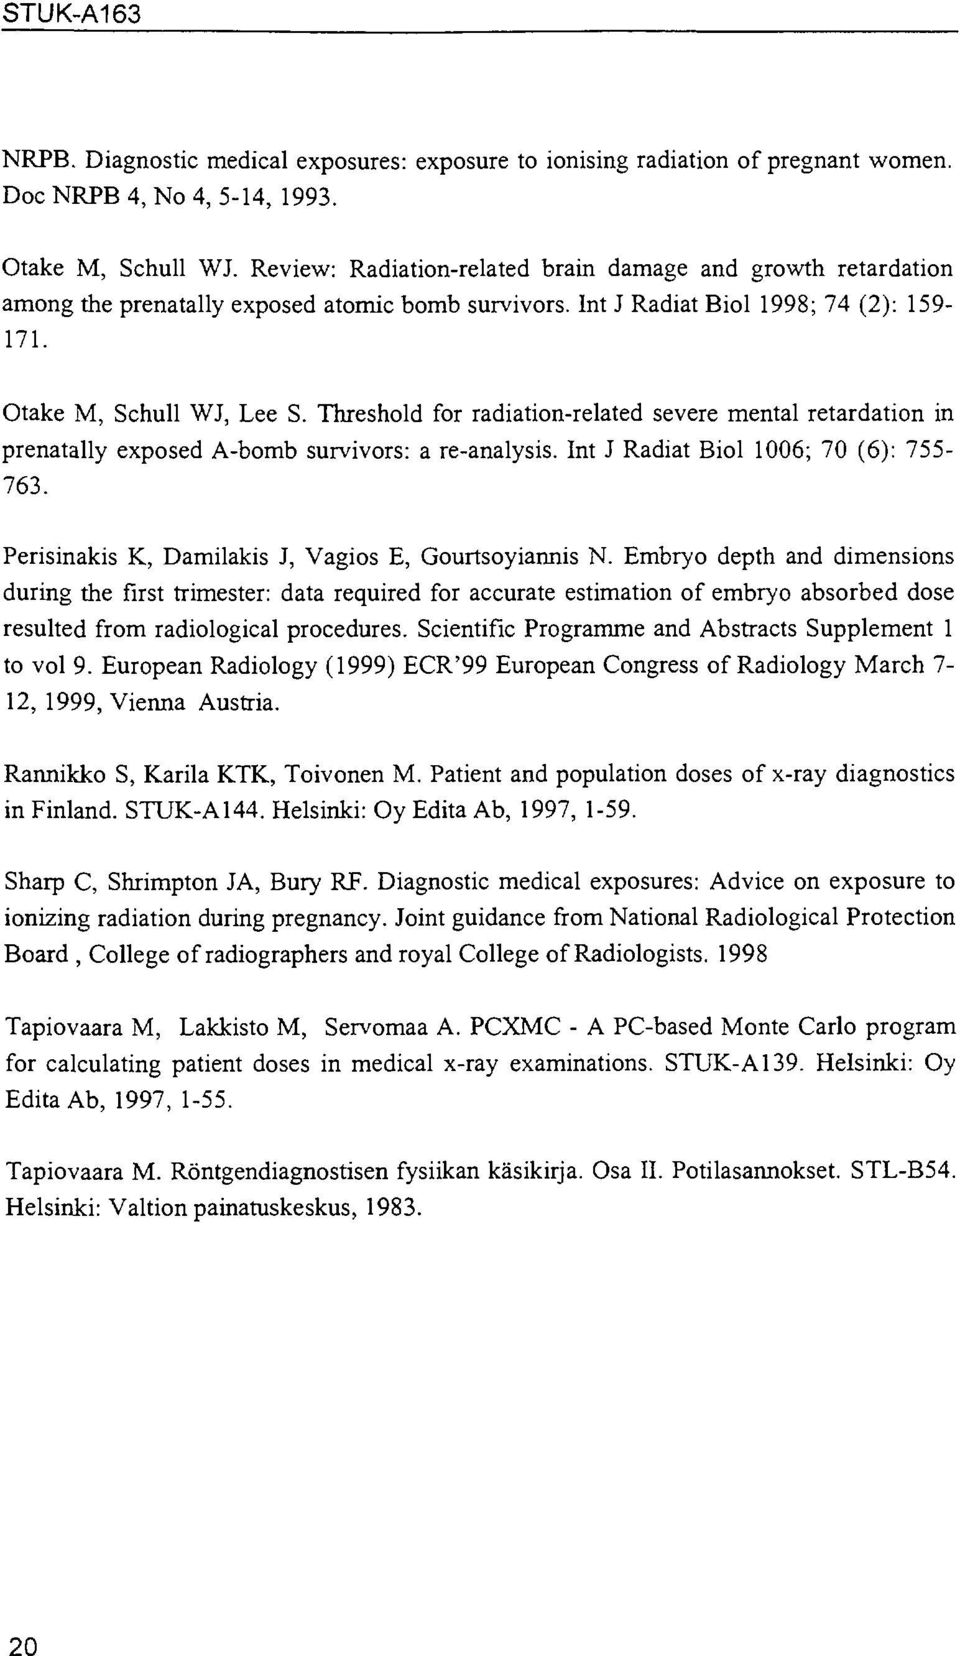 Threshold for radiation-related severe mental retardation in prenatally exposed A-bomb survivors: a re-analysis. Int J Radiat Biol 1006; 70 (6): 755-763.